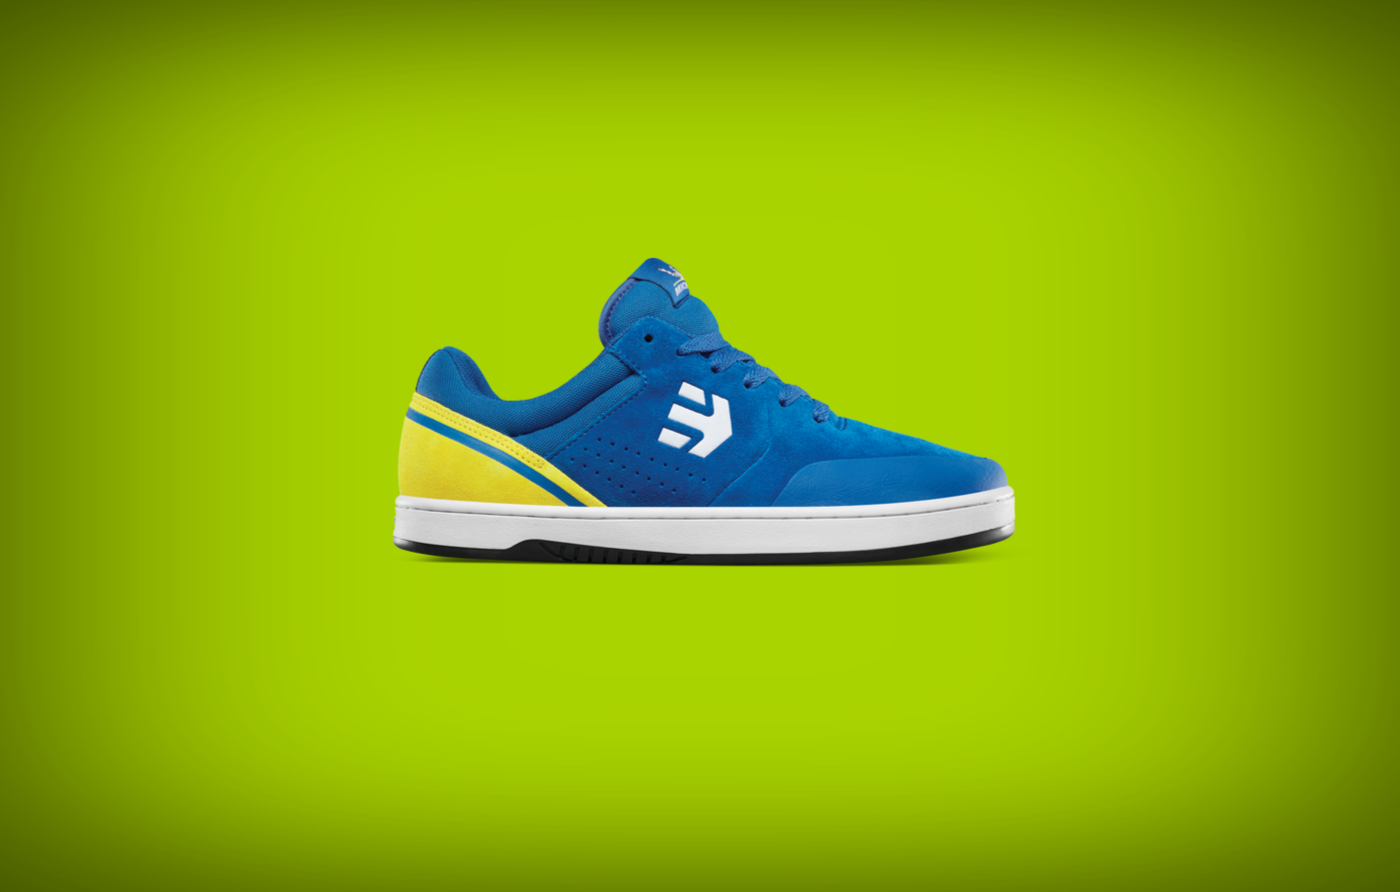 etnies marana sneakers blue yellow